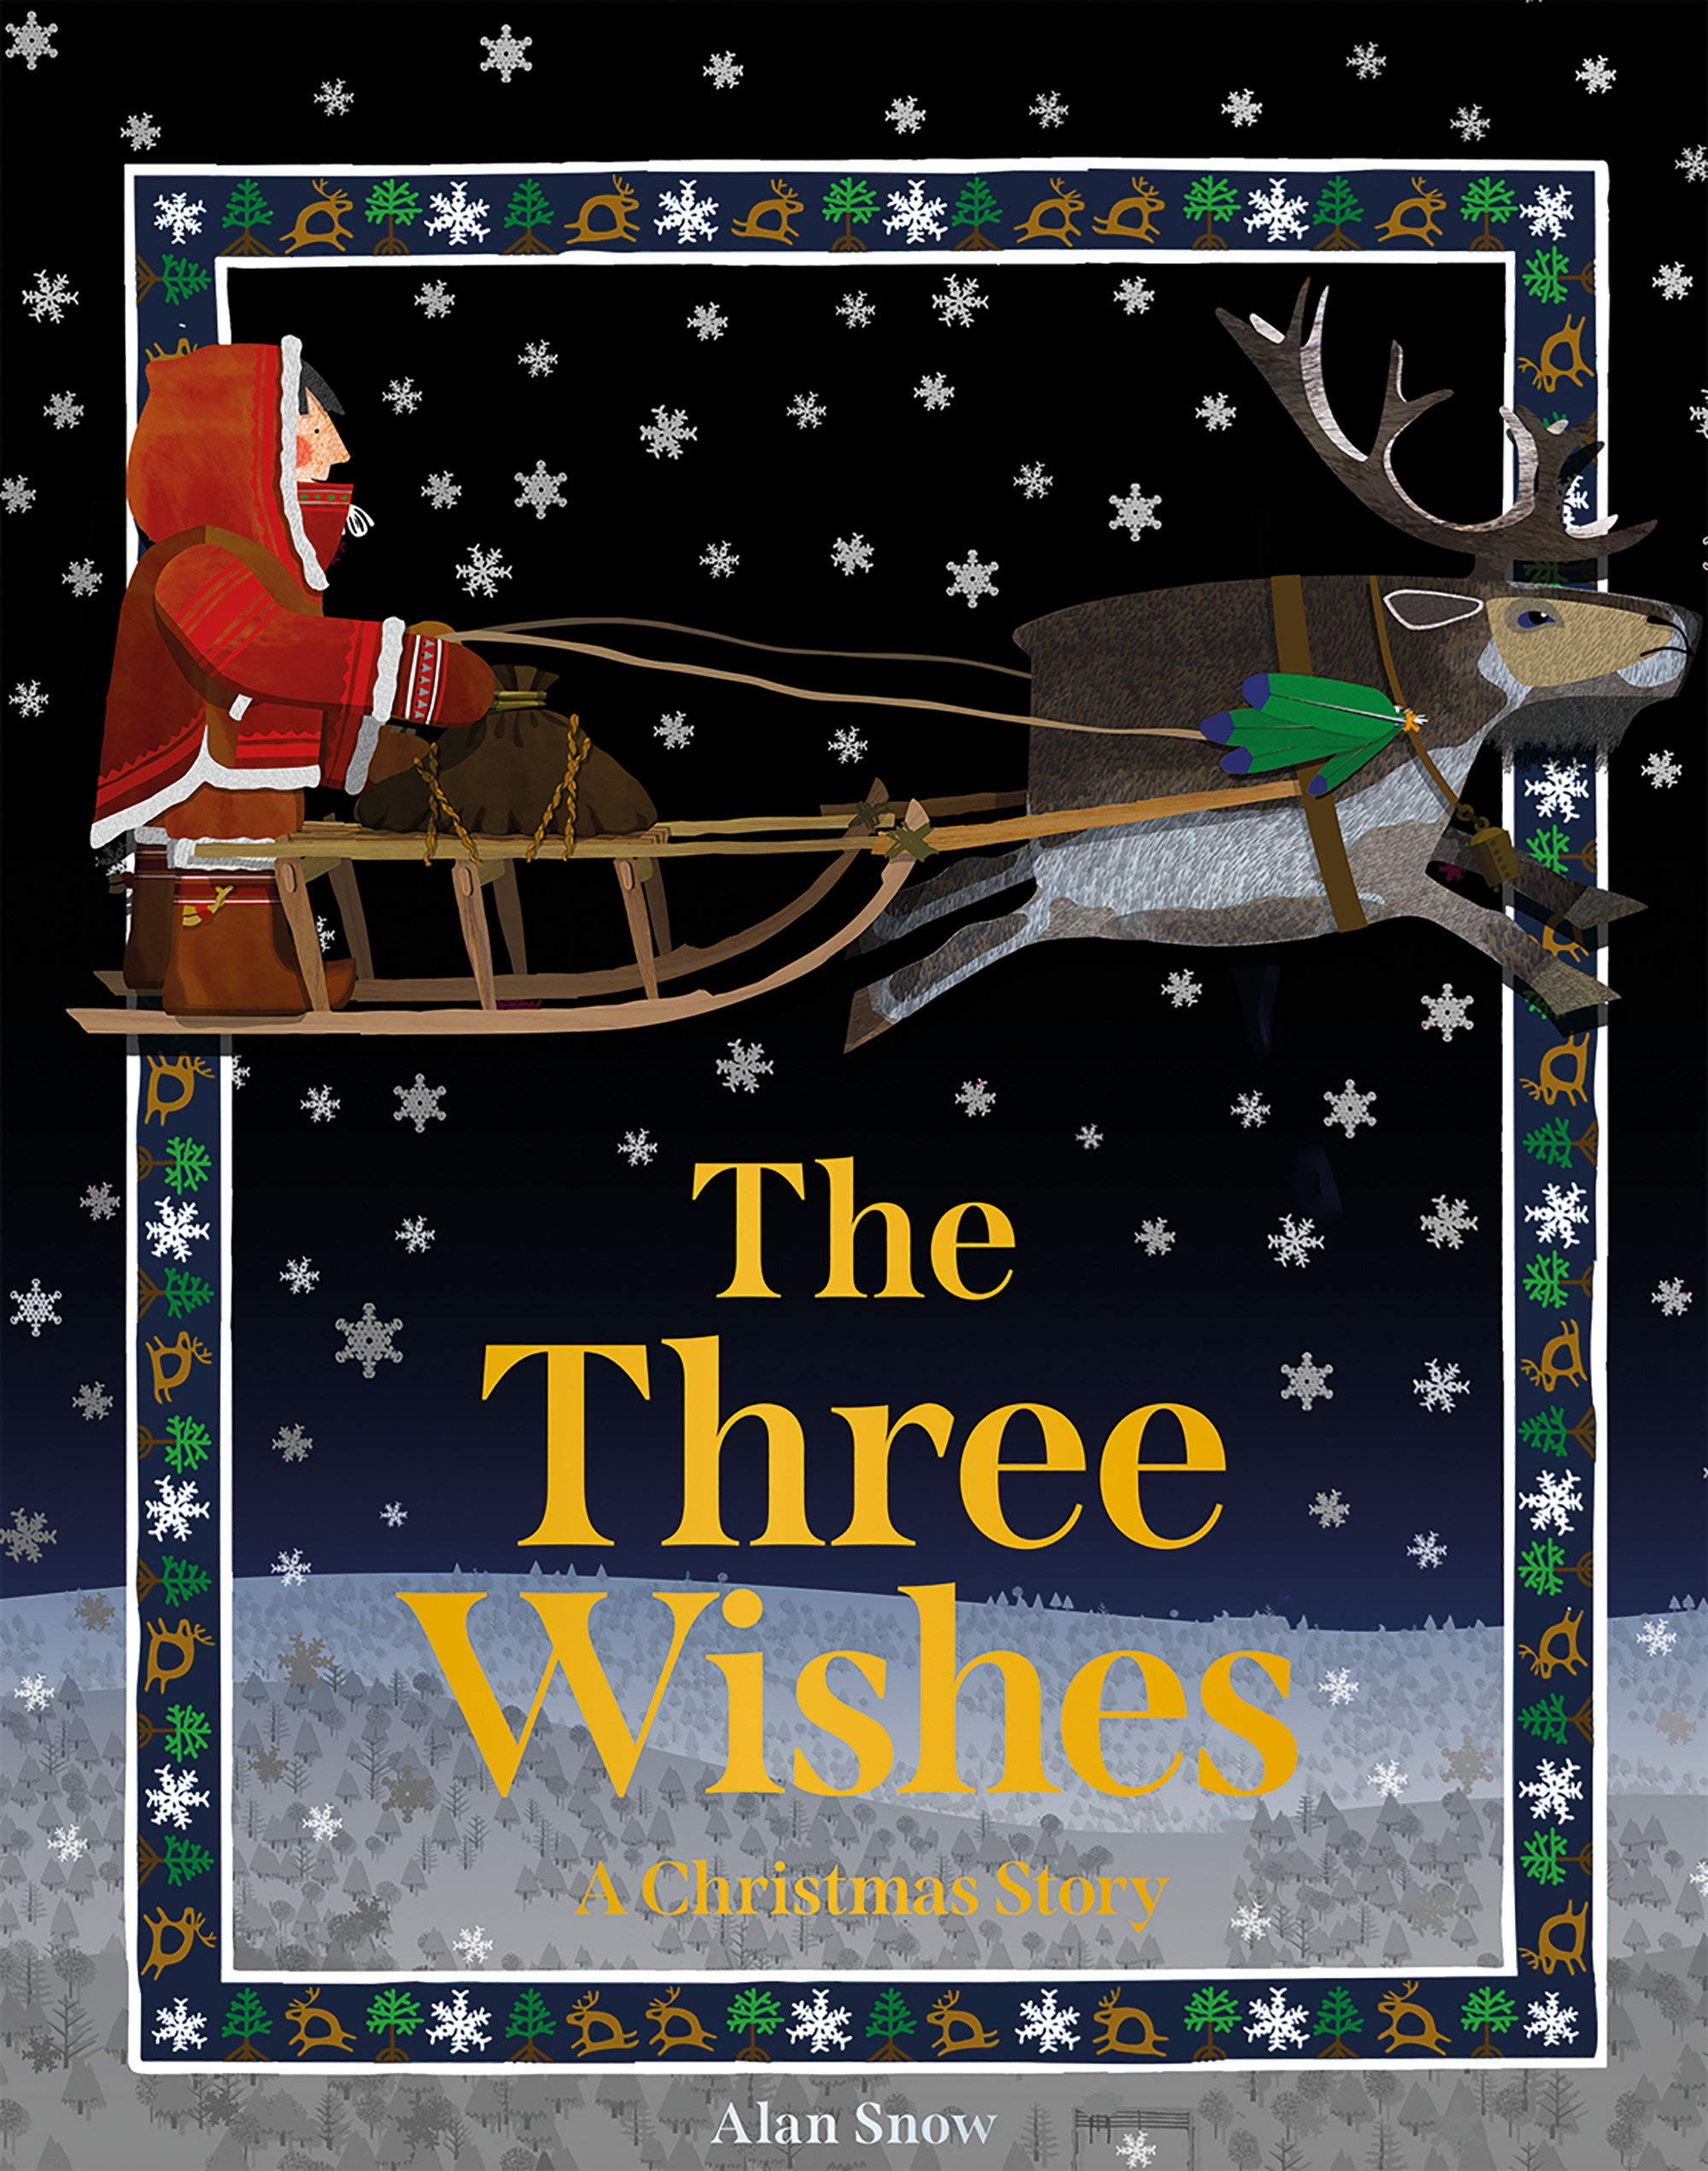 Christmas Reindeer Story 2020 The Three Wishes: A Christmas Story: Snow, Alan: 9781843653868